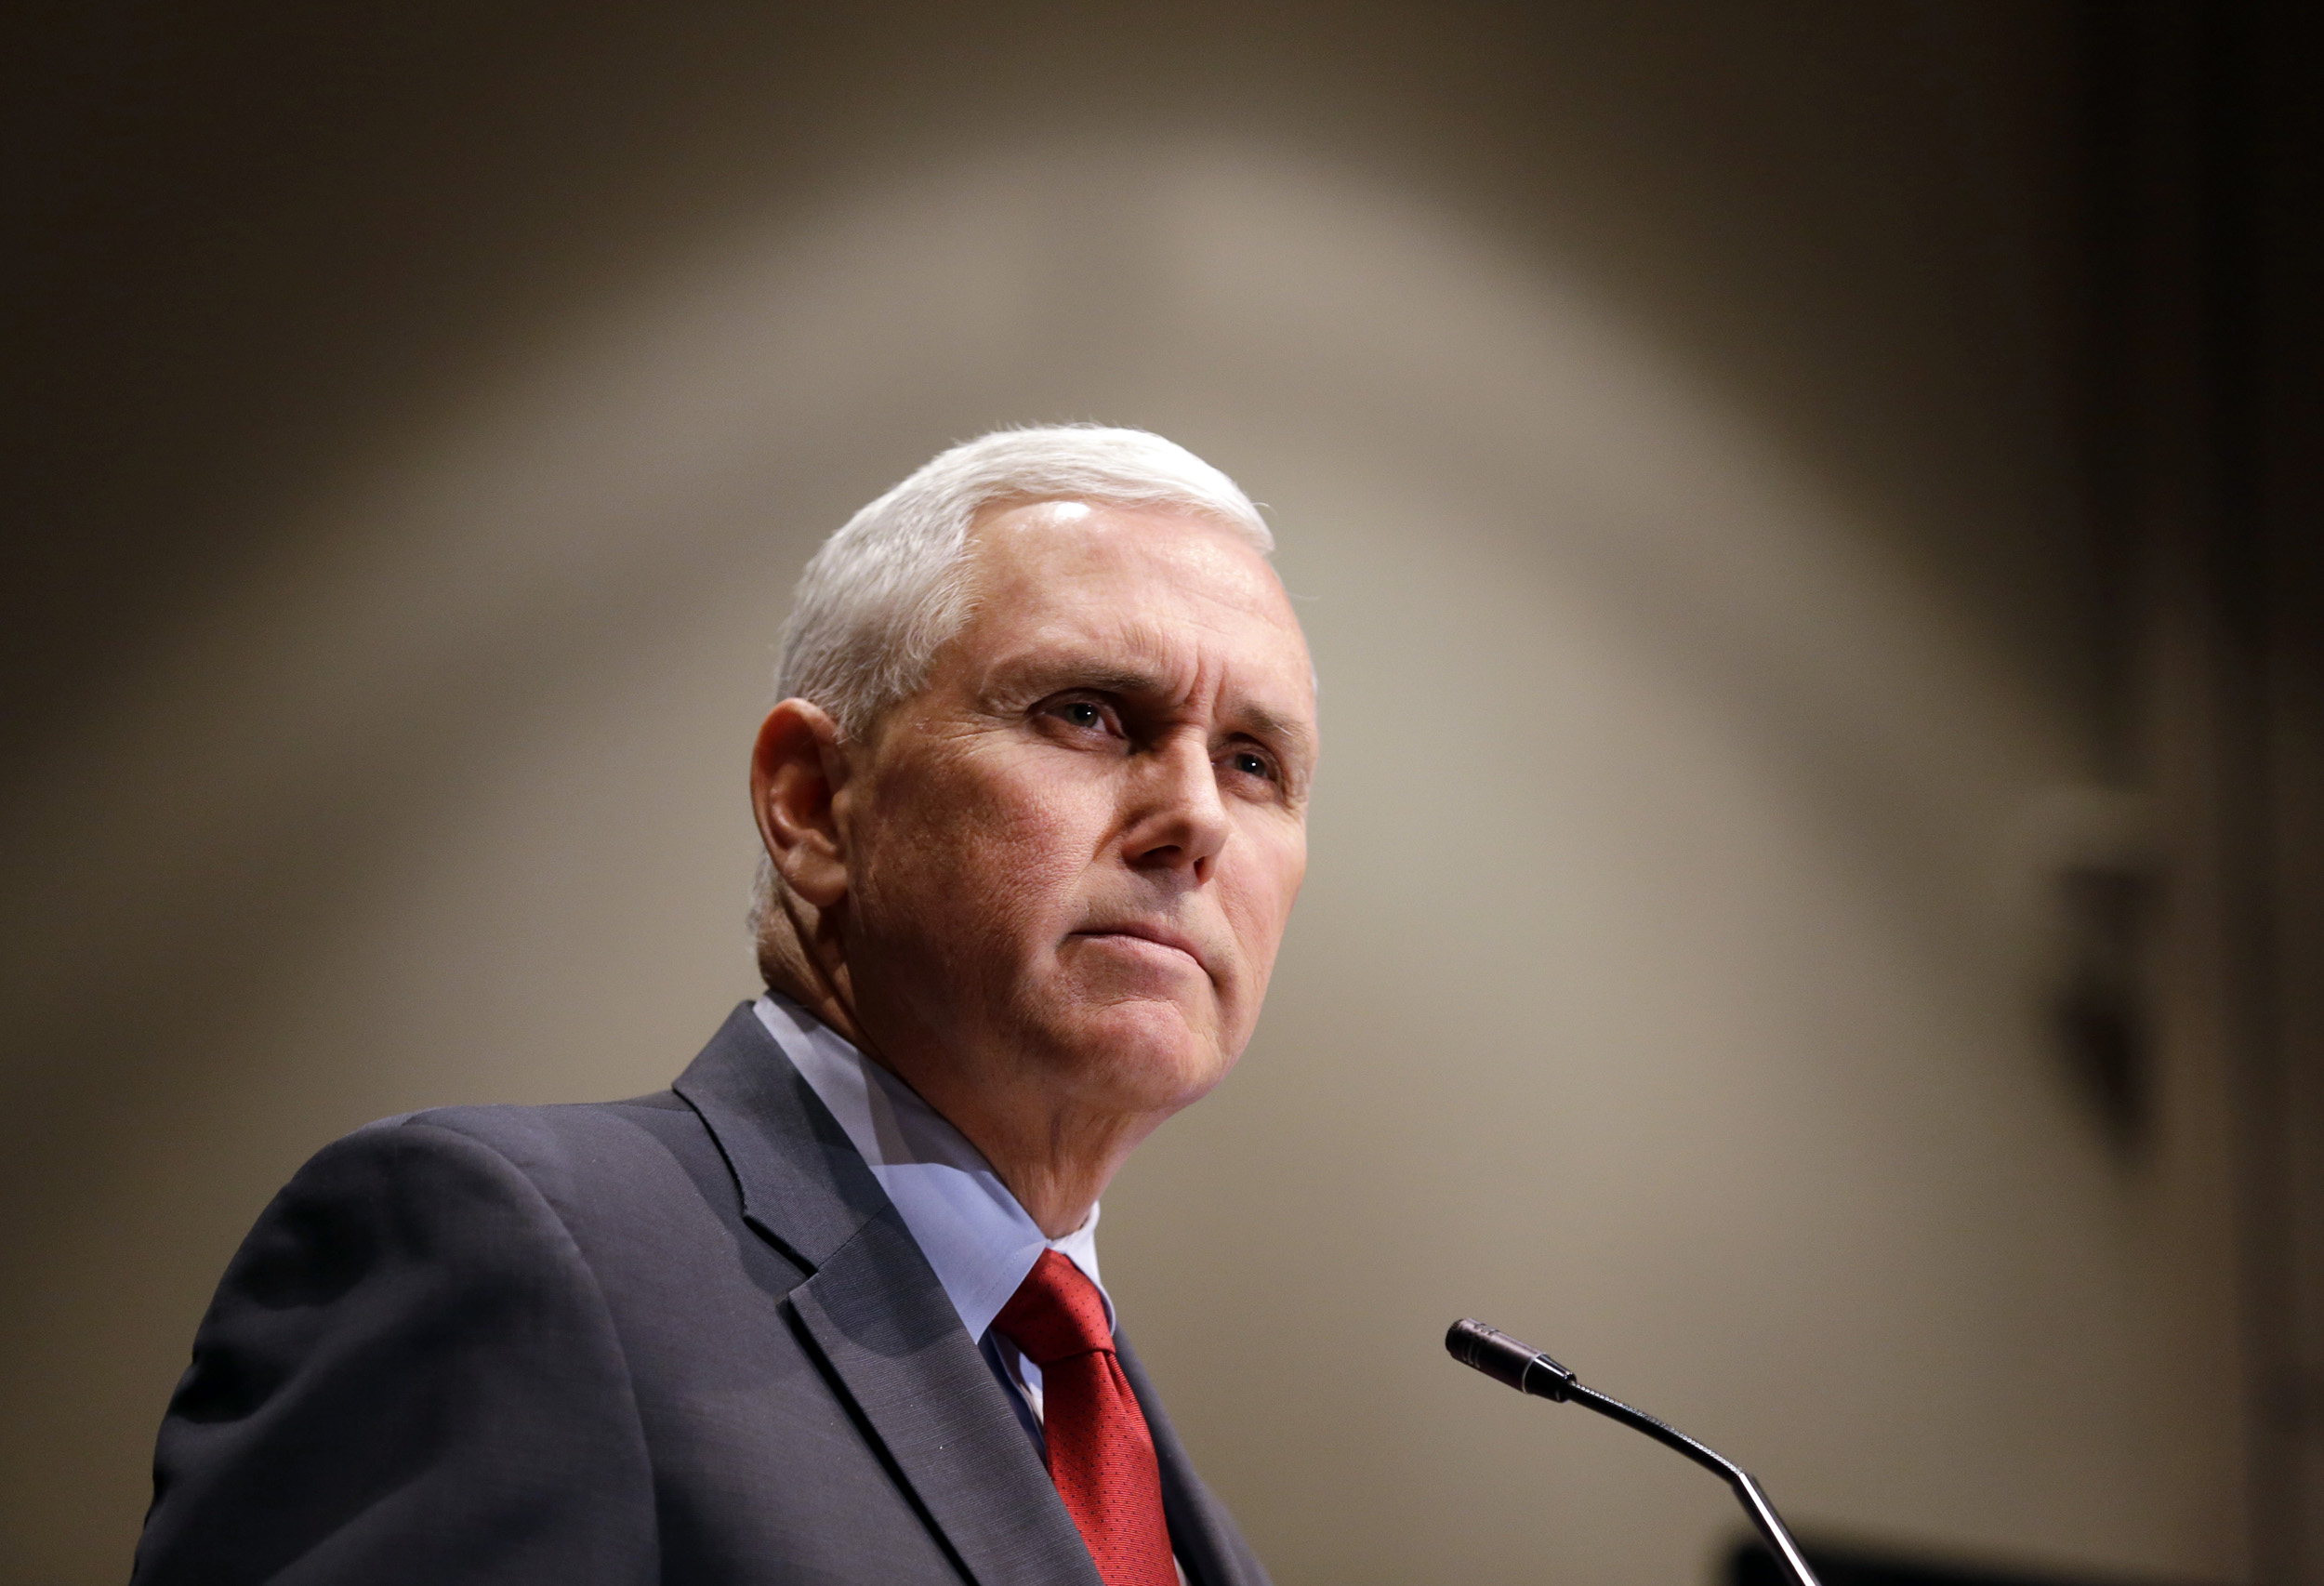 Indiana Gov. Mike Pence gives a speech in Indianapolis on Jan. 27, 2015.